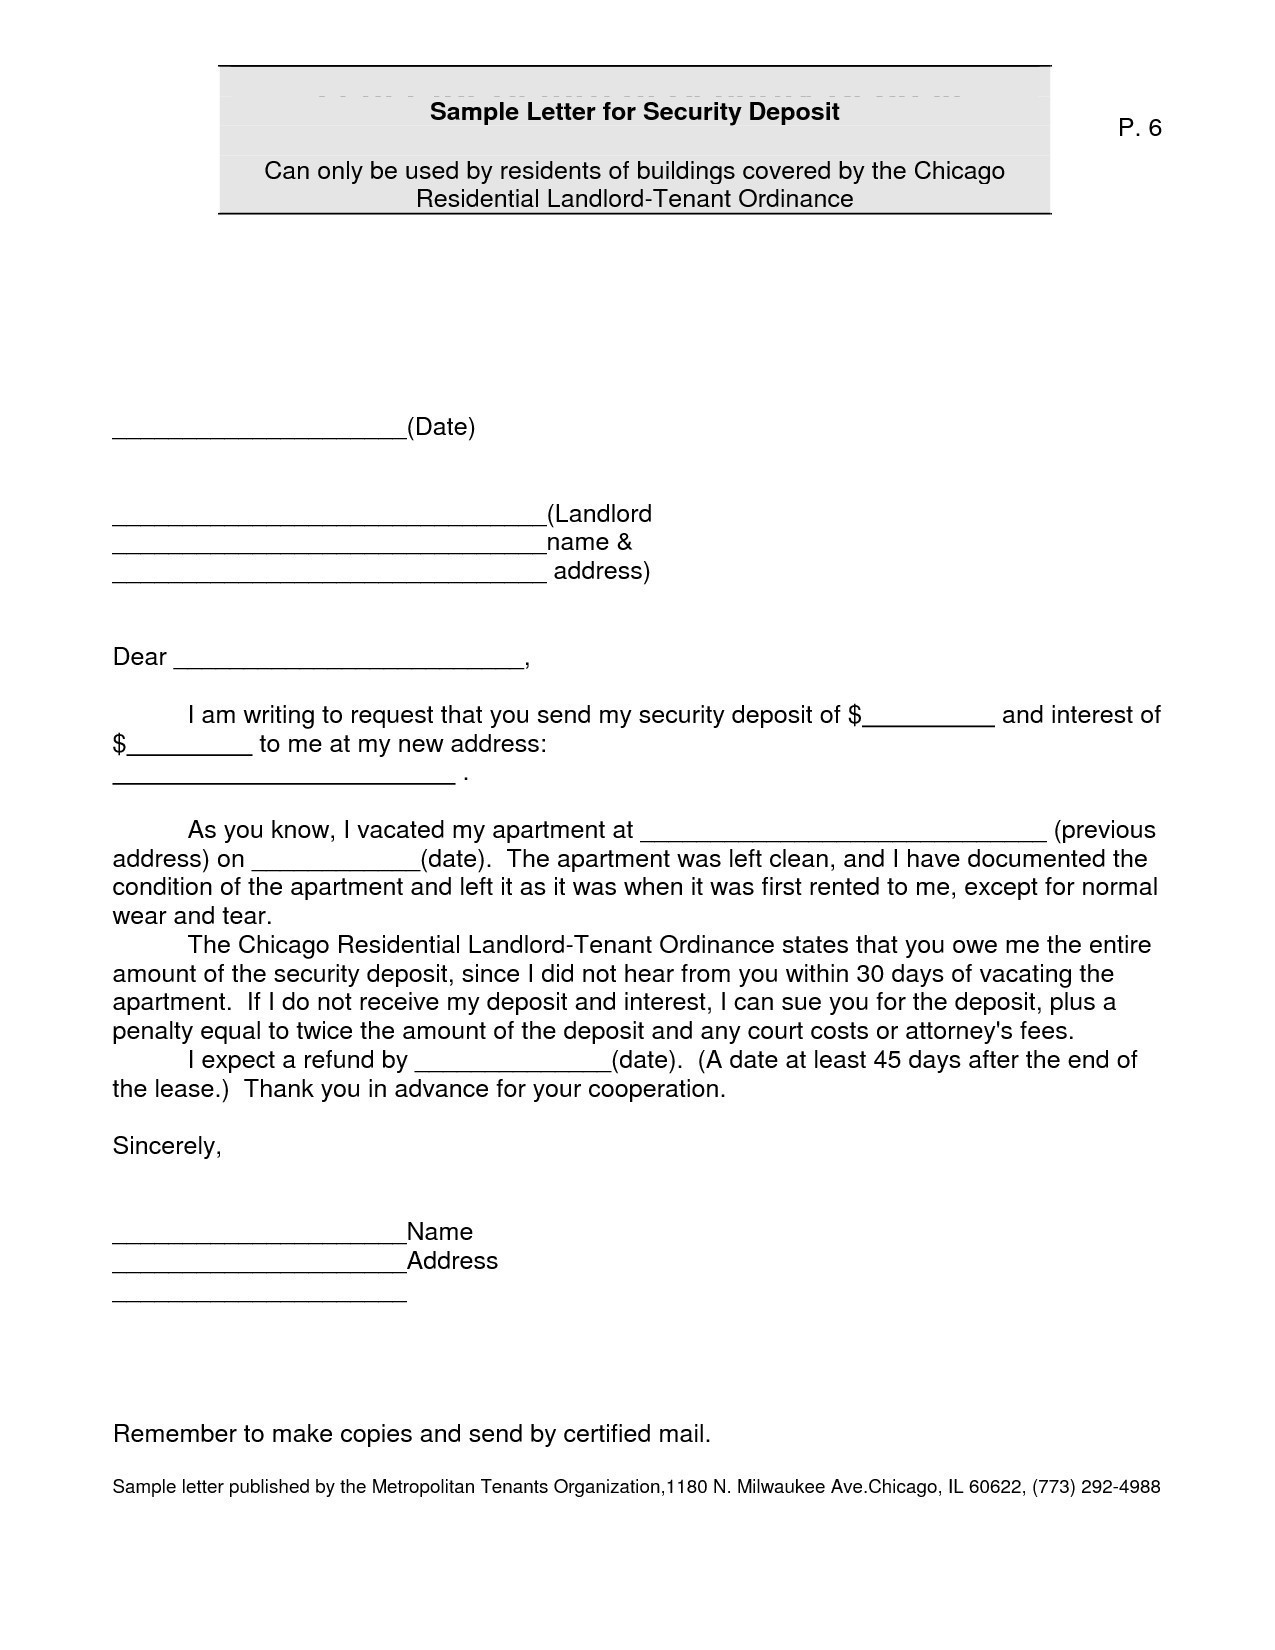 security deposit demand letter template florida Collection-New Refund Letter Best Letter format for Requesting A Refund Best Best S Demand for 20-s